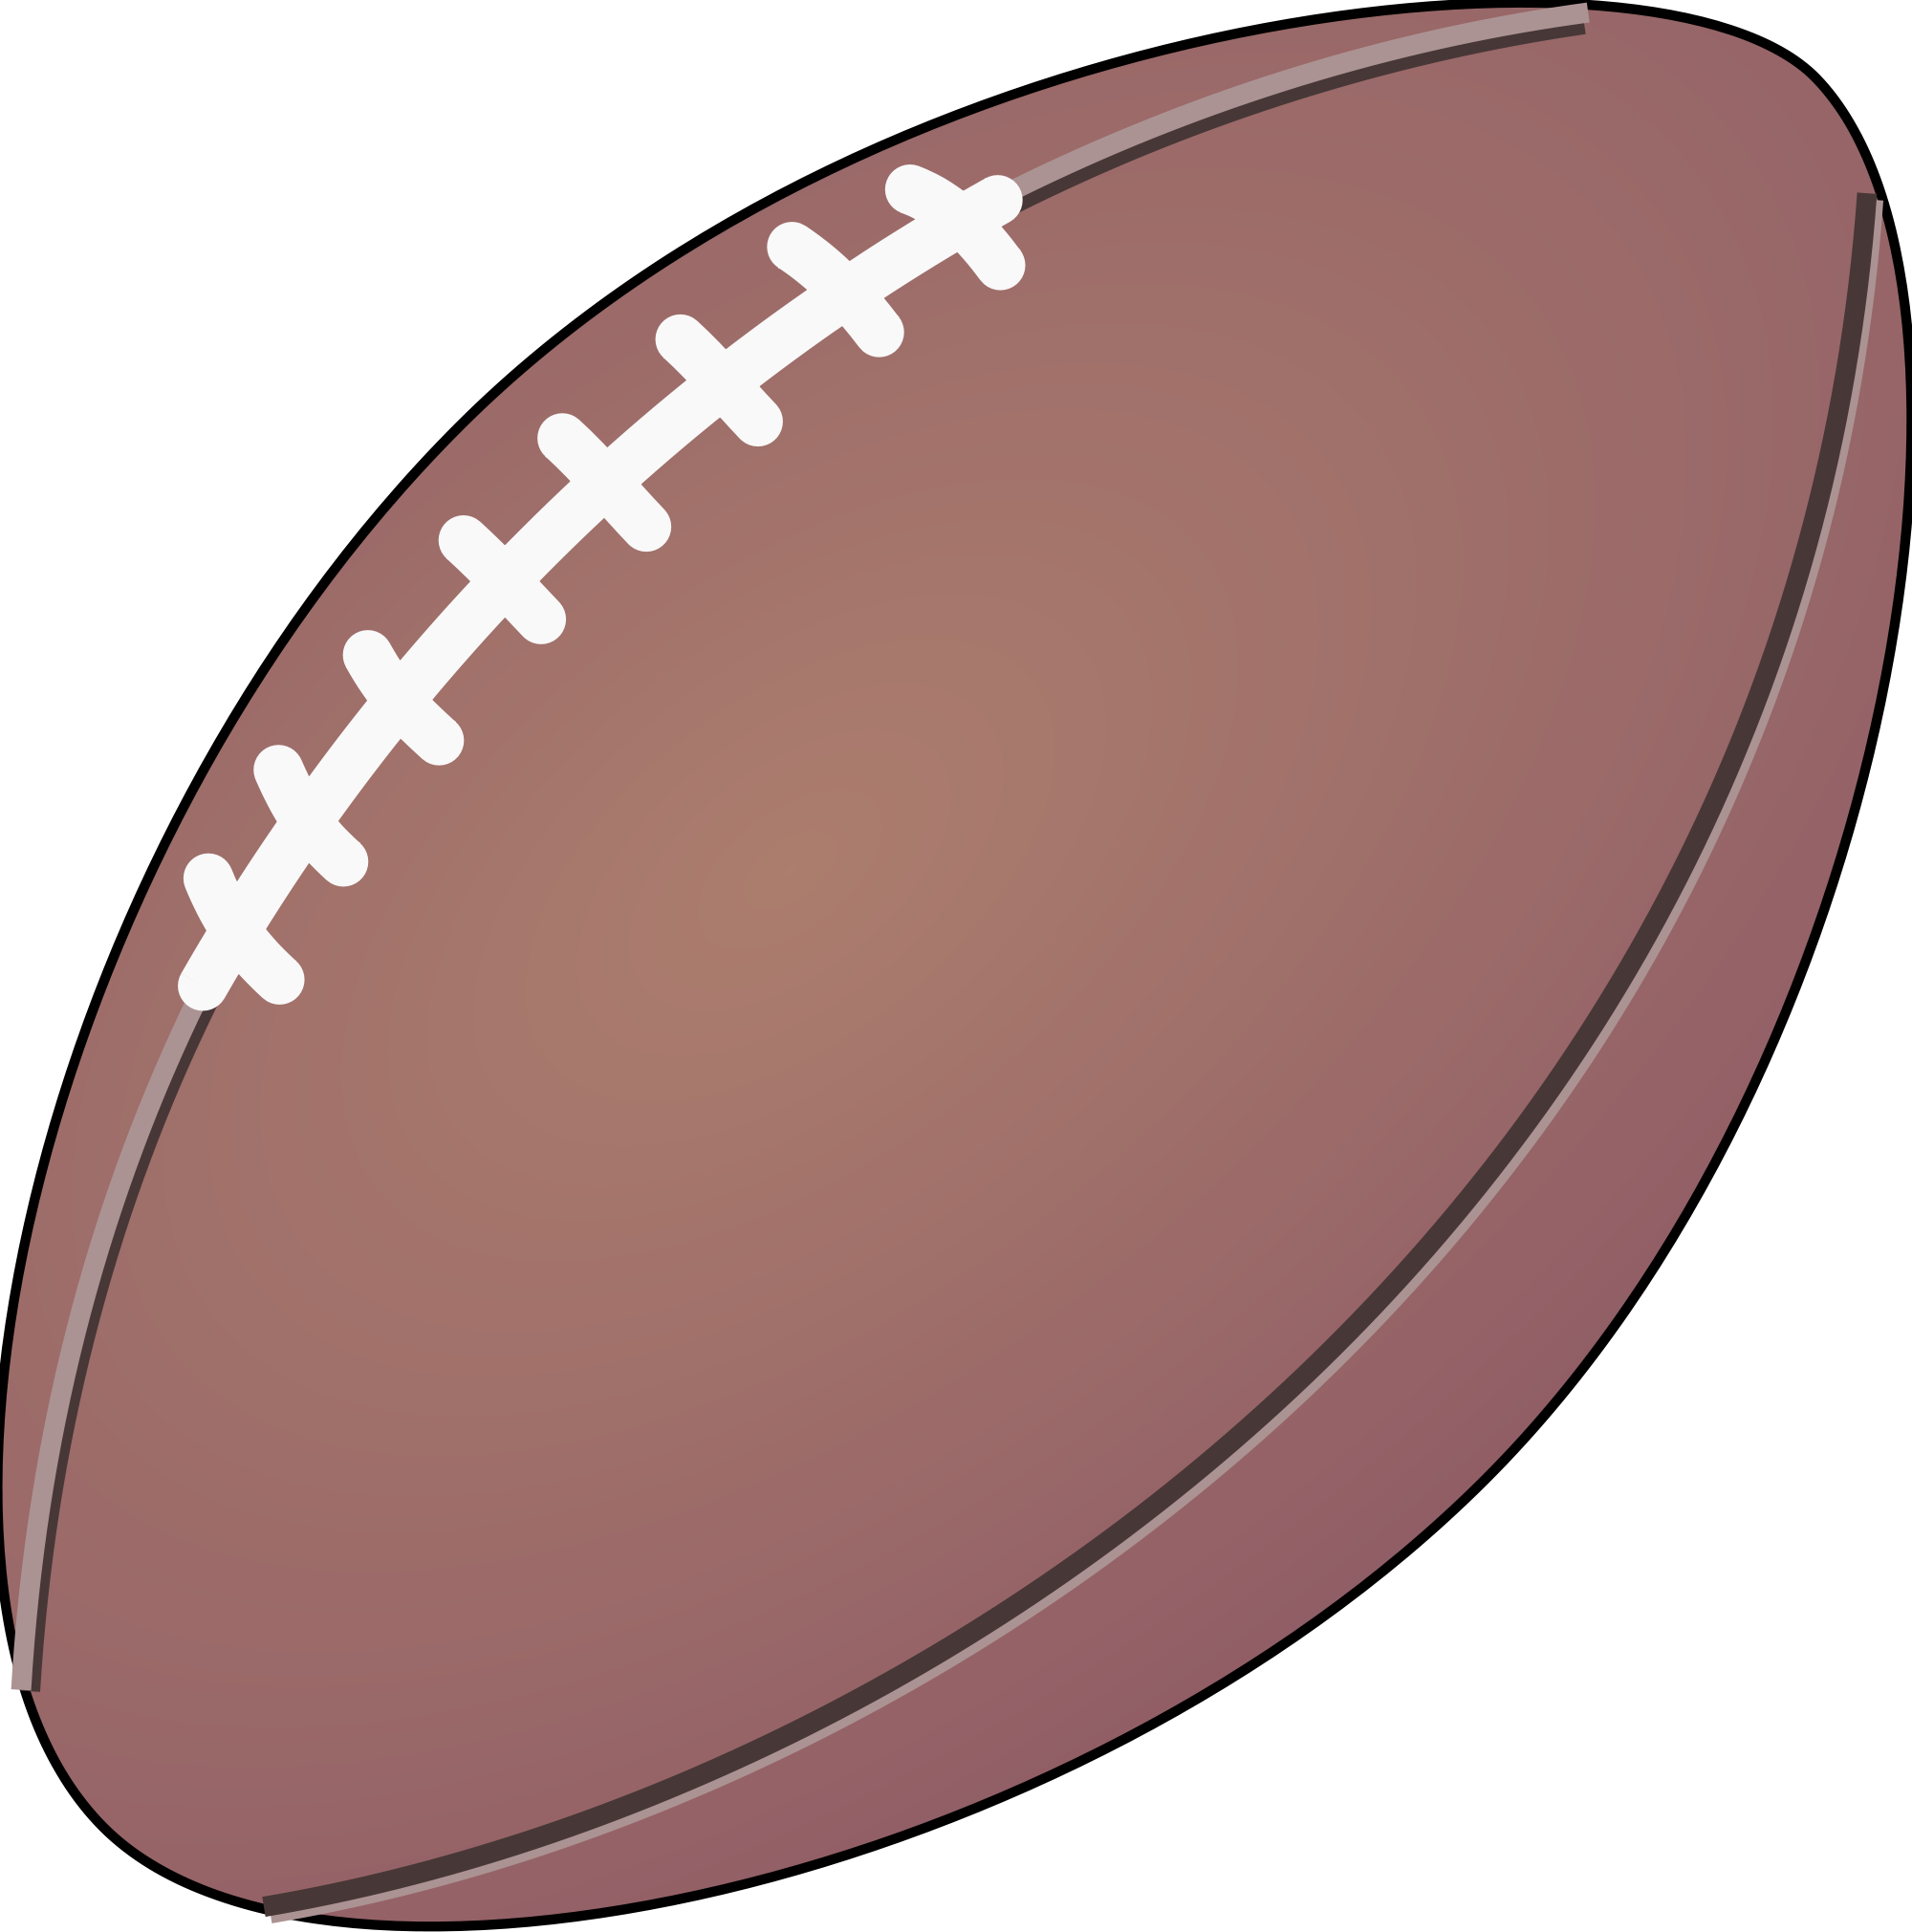 Pictures of footballs to. Destiny clipart